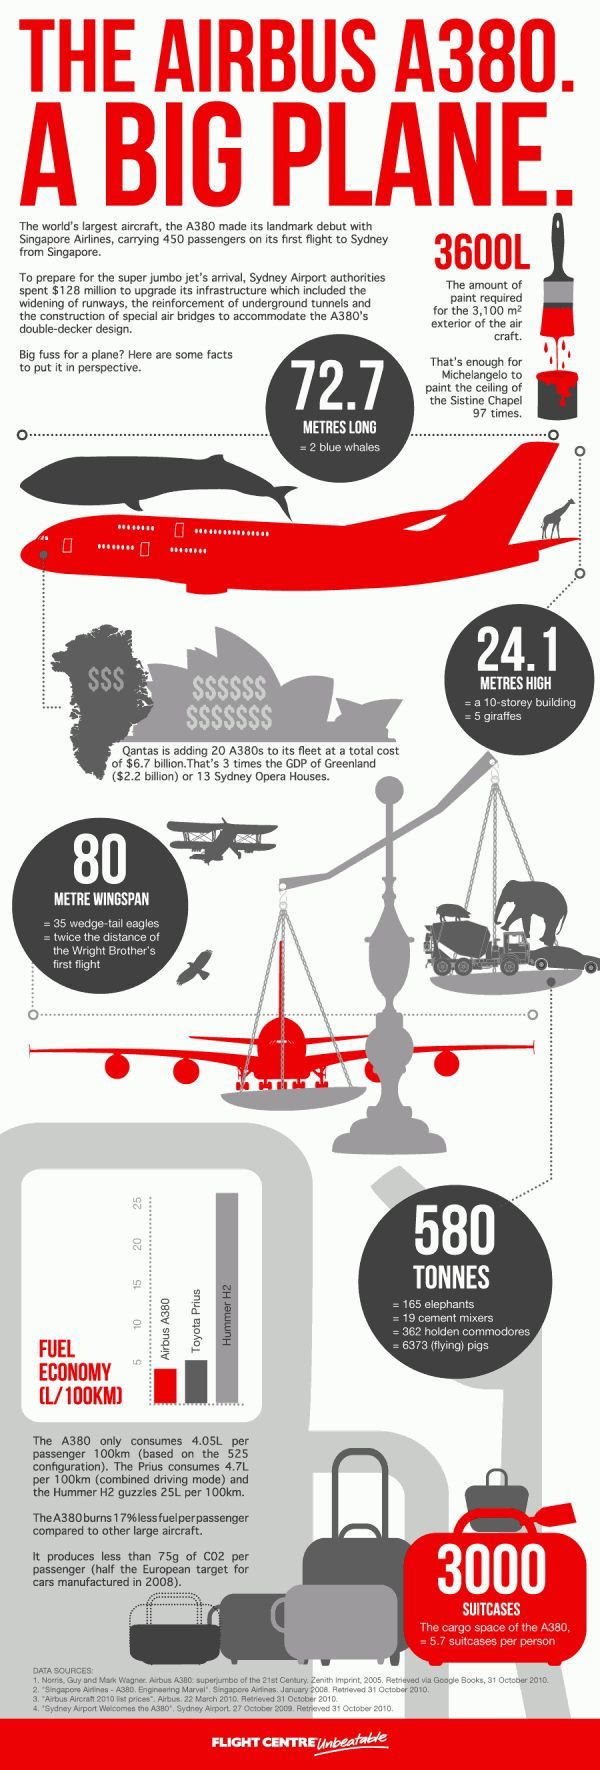 Airbus A380 Extraordinary Facts #Infographic